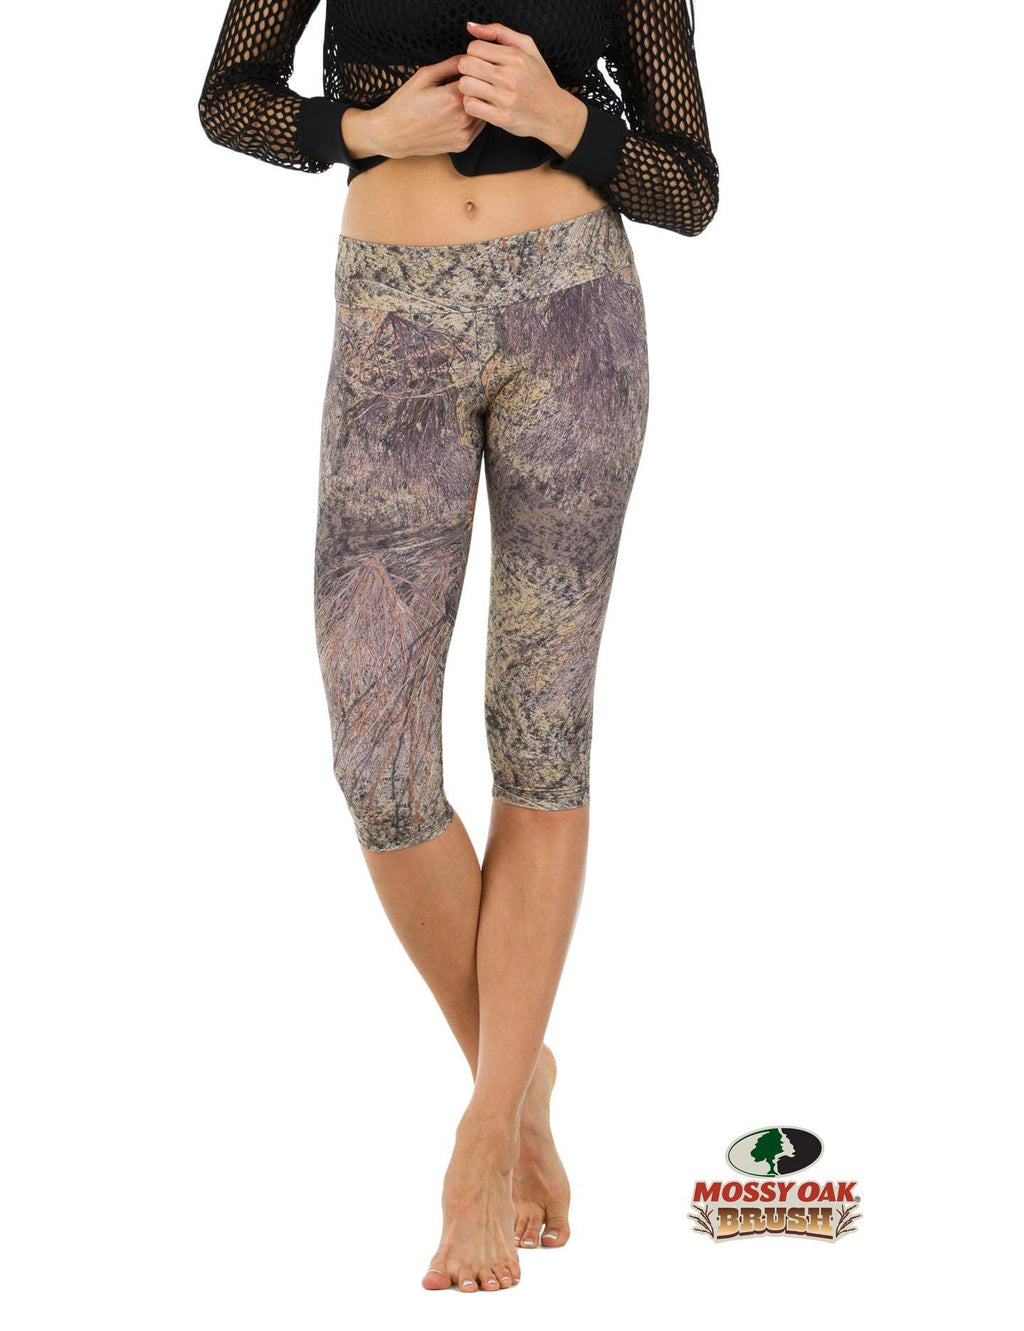 Apsara Leggings Low Waist Capri, Mossy Oak Brush - Apsara Style